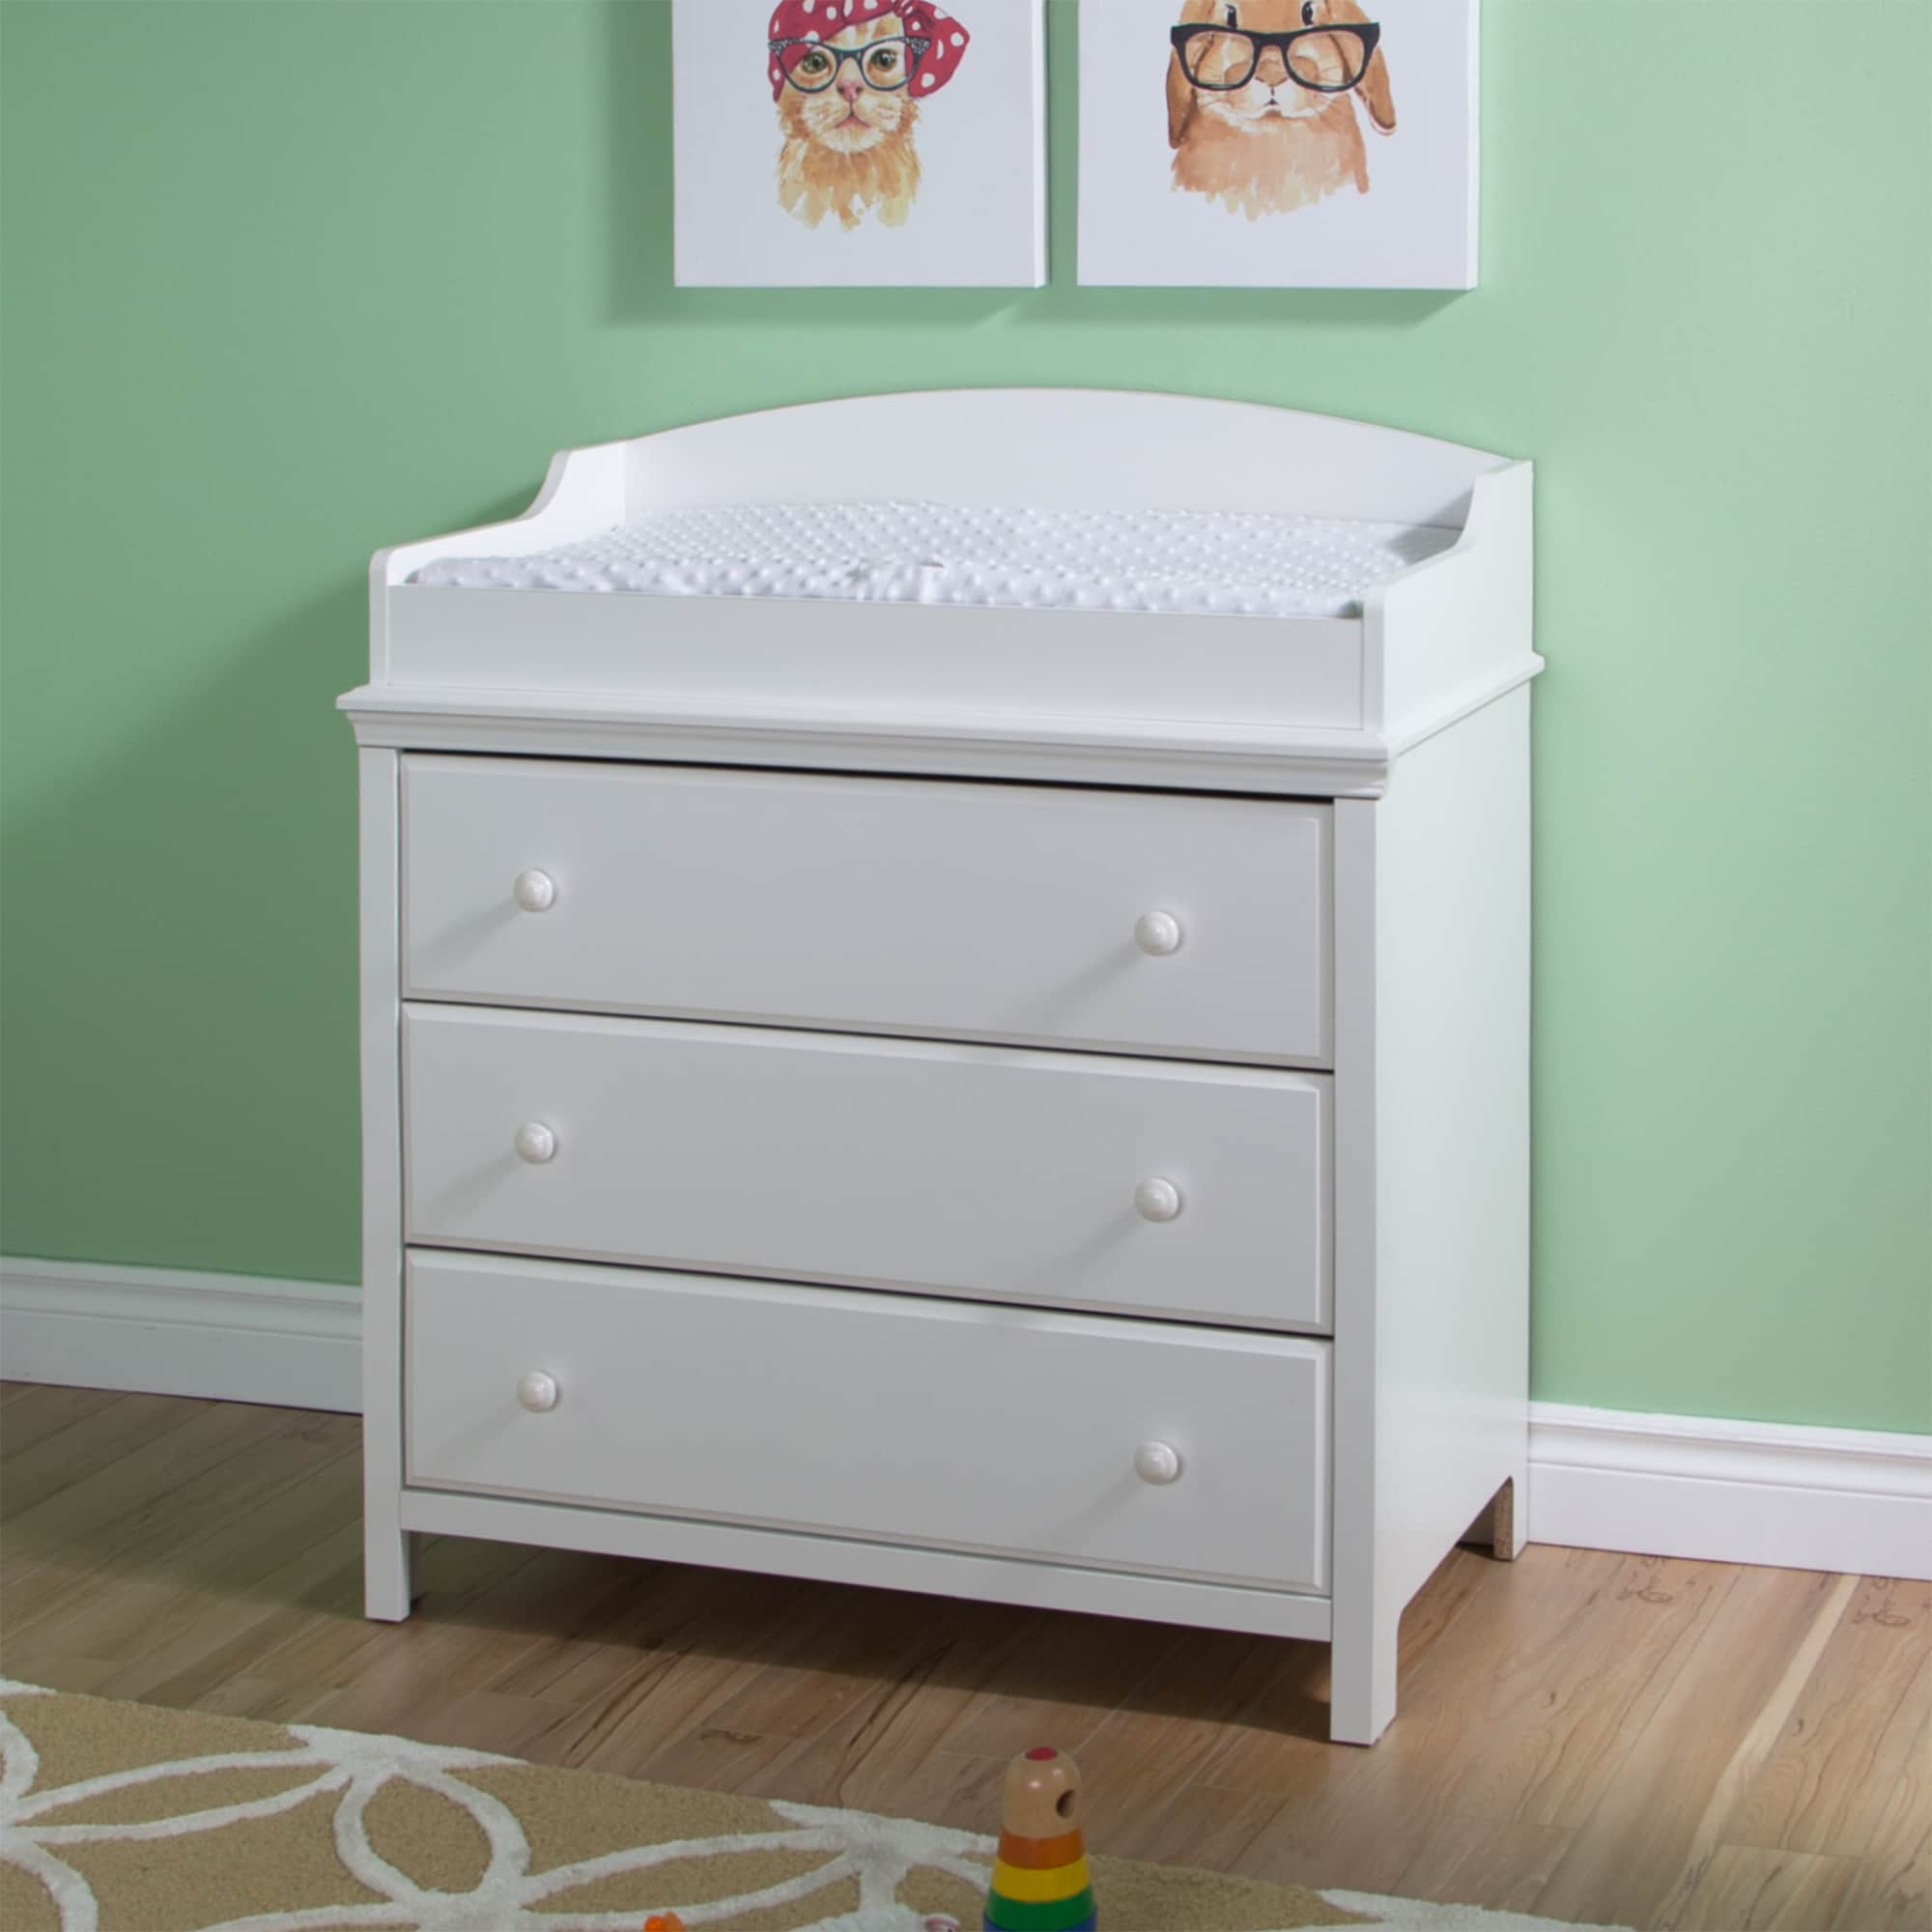 Changing Table Chest Of Drawers South Shore Cotton Candy Changing Table With Drawers